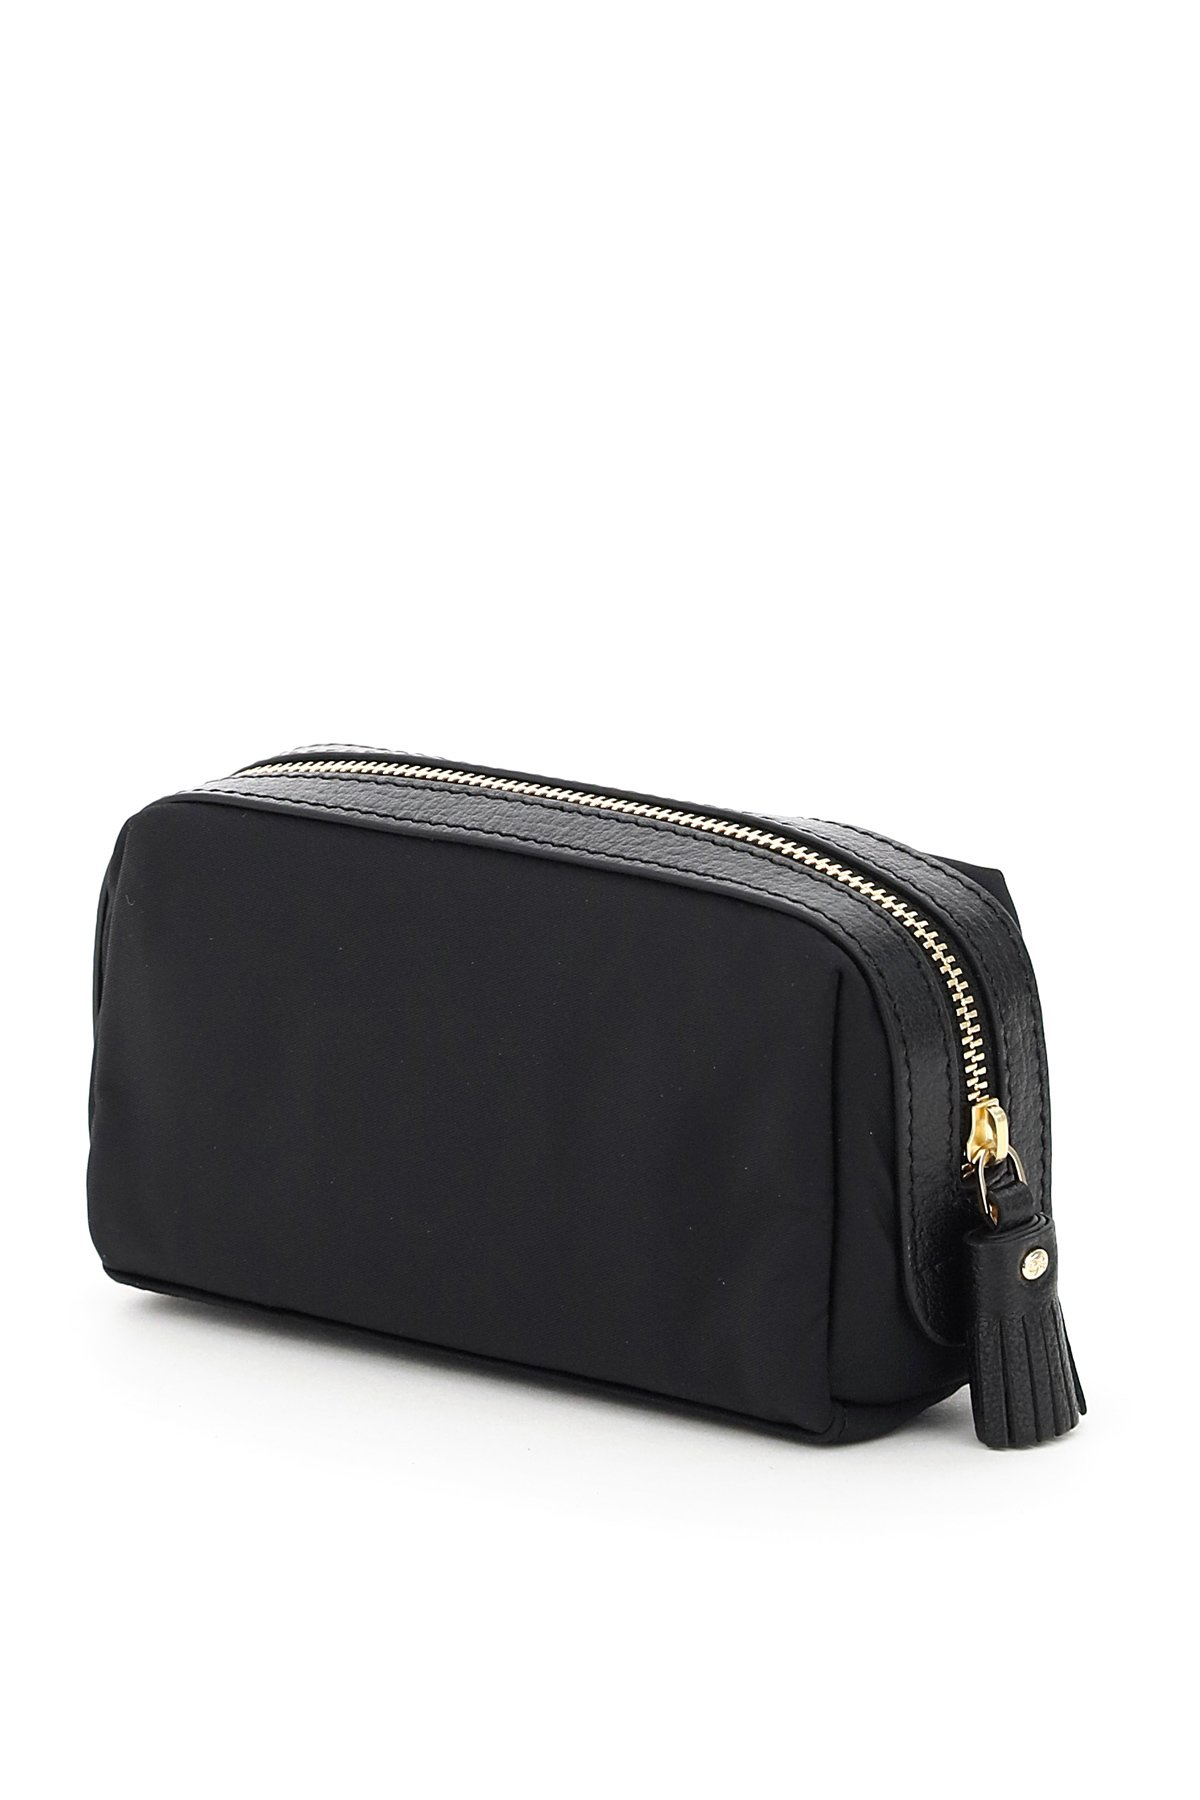 Anya hindmarch pouch recycled nylon girlie stuff